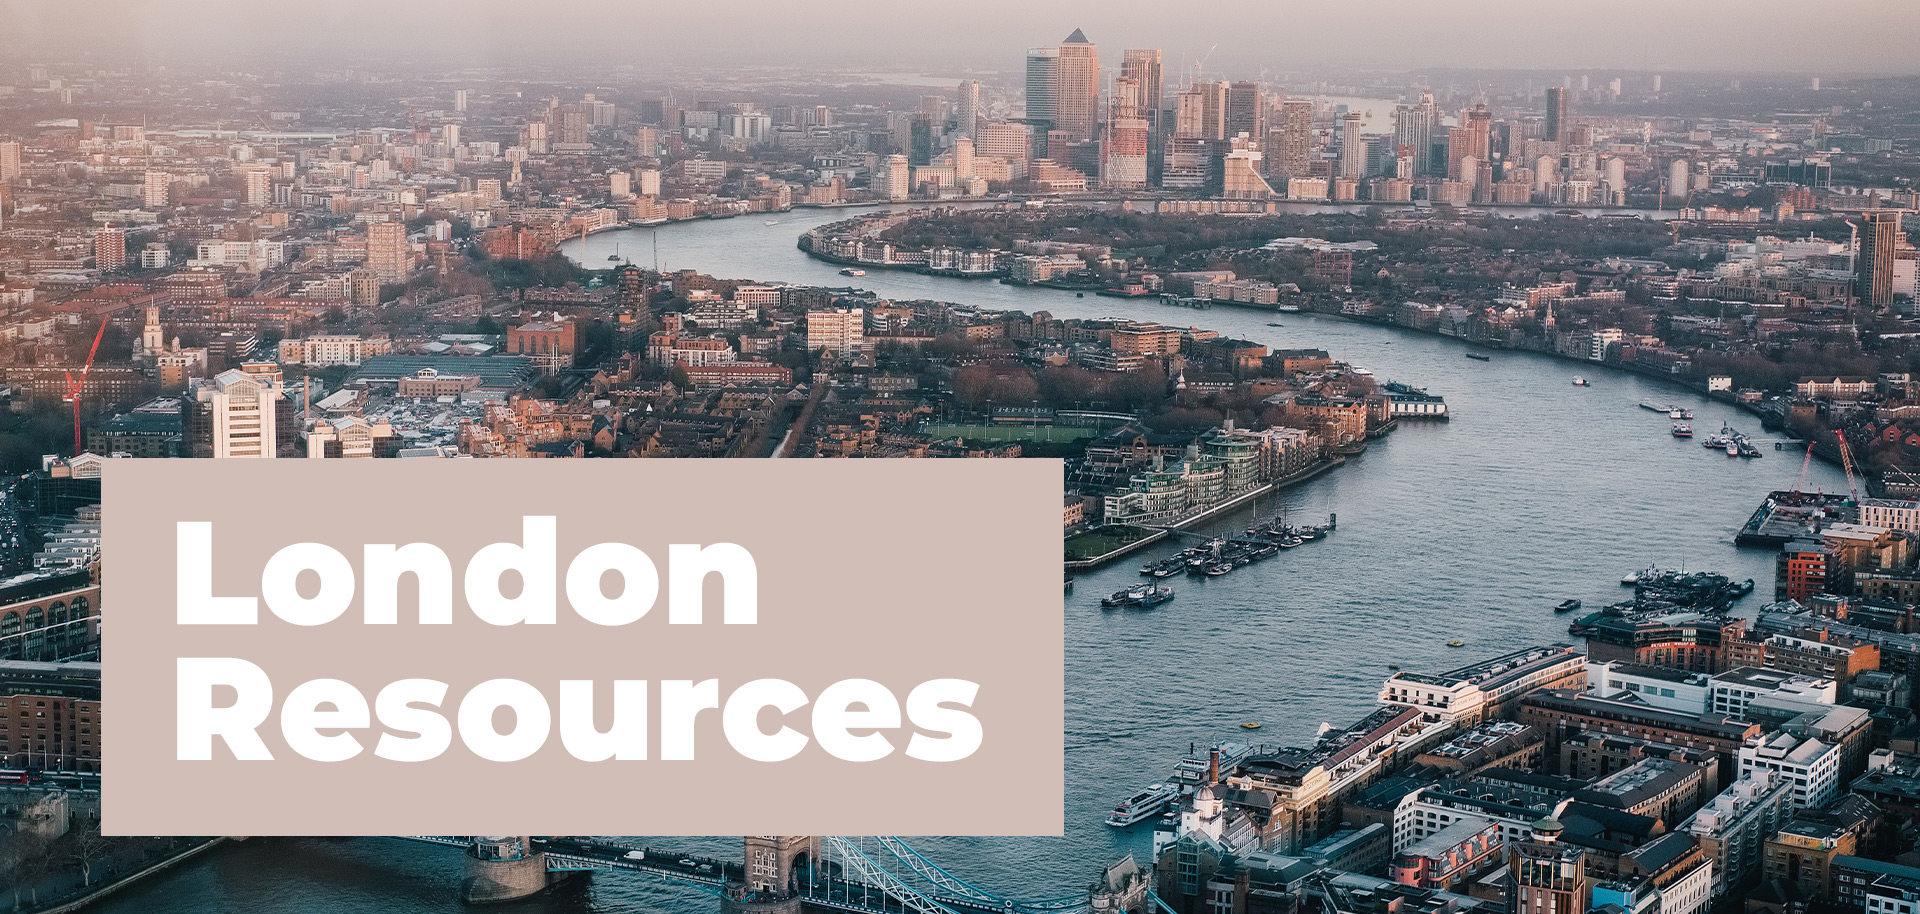 London Resources